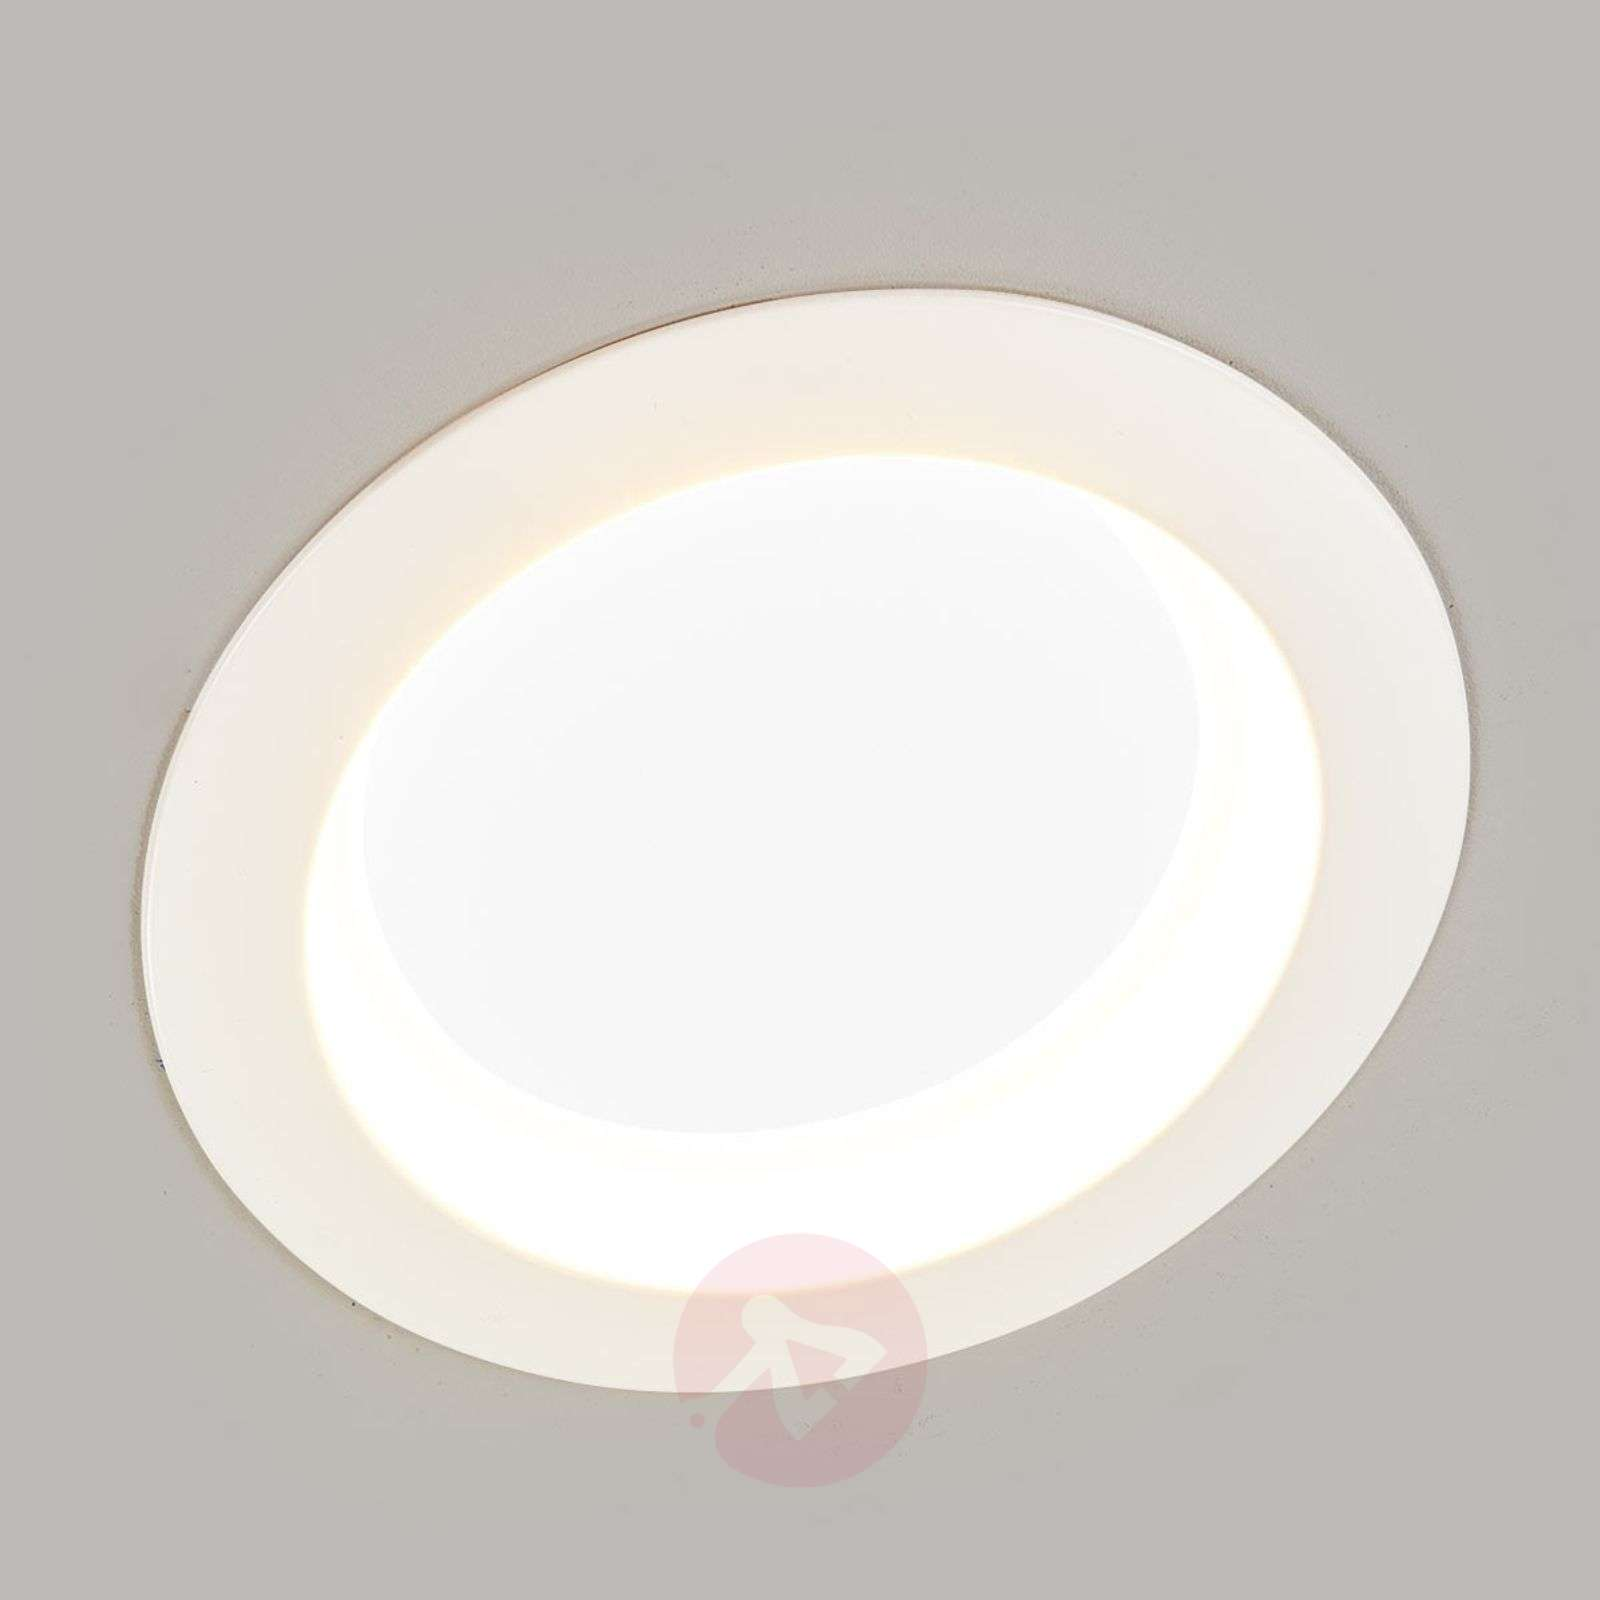 Spot encastrable LED Piet, 12 W couleur réglable-9978033-011